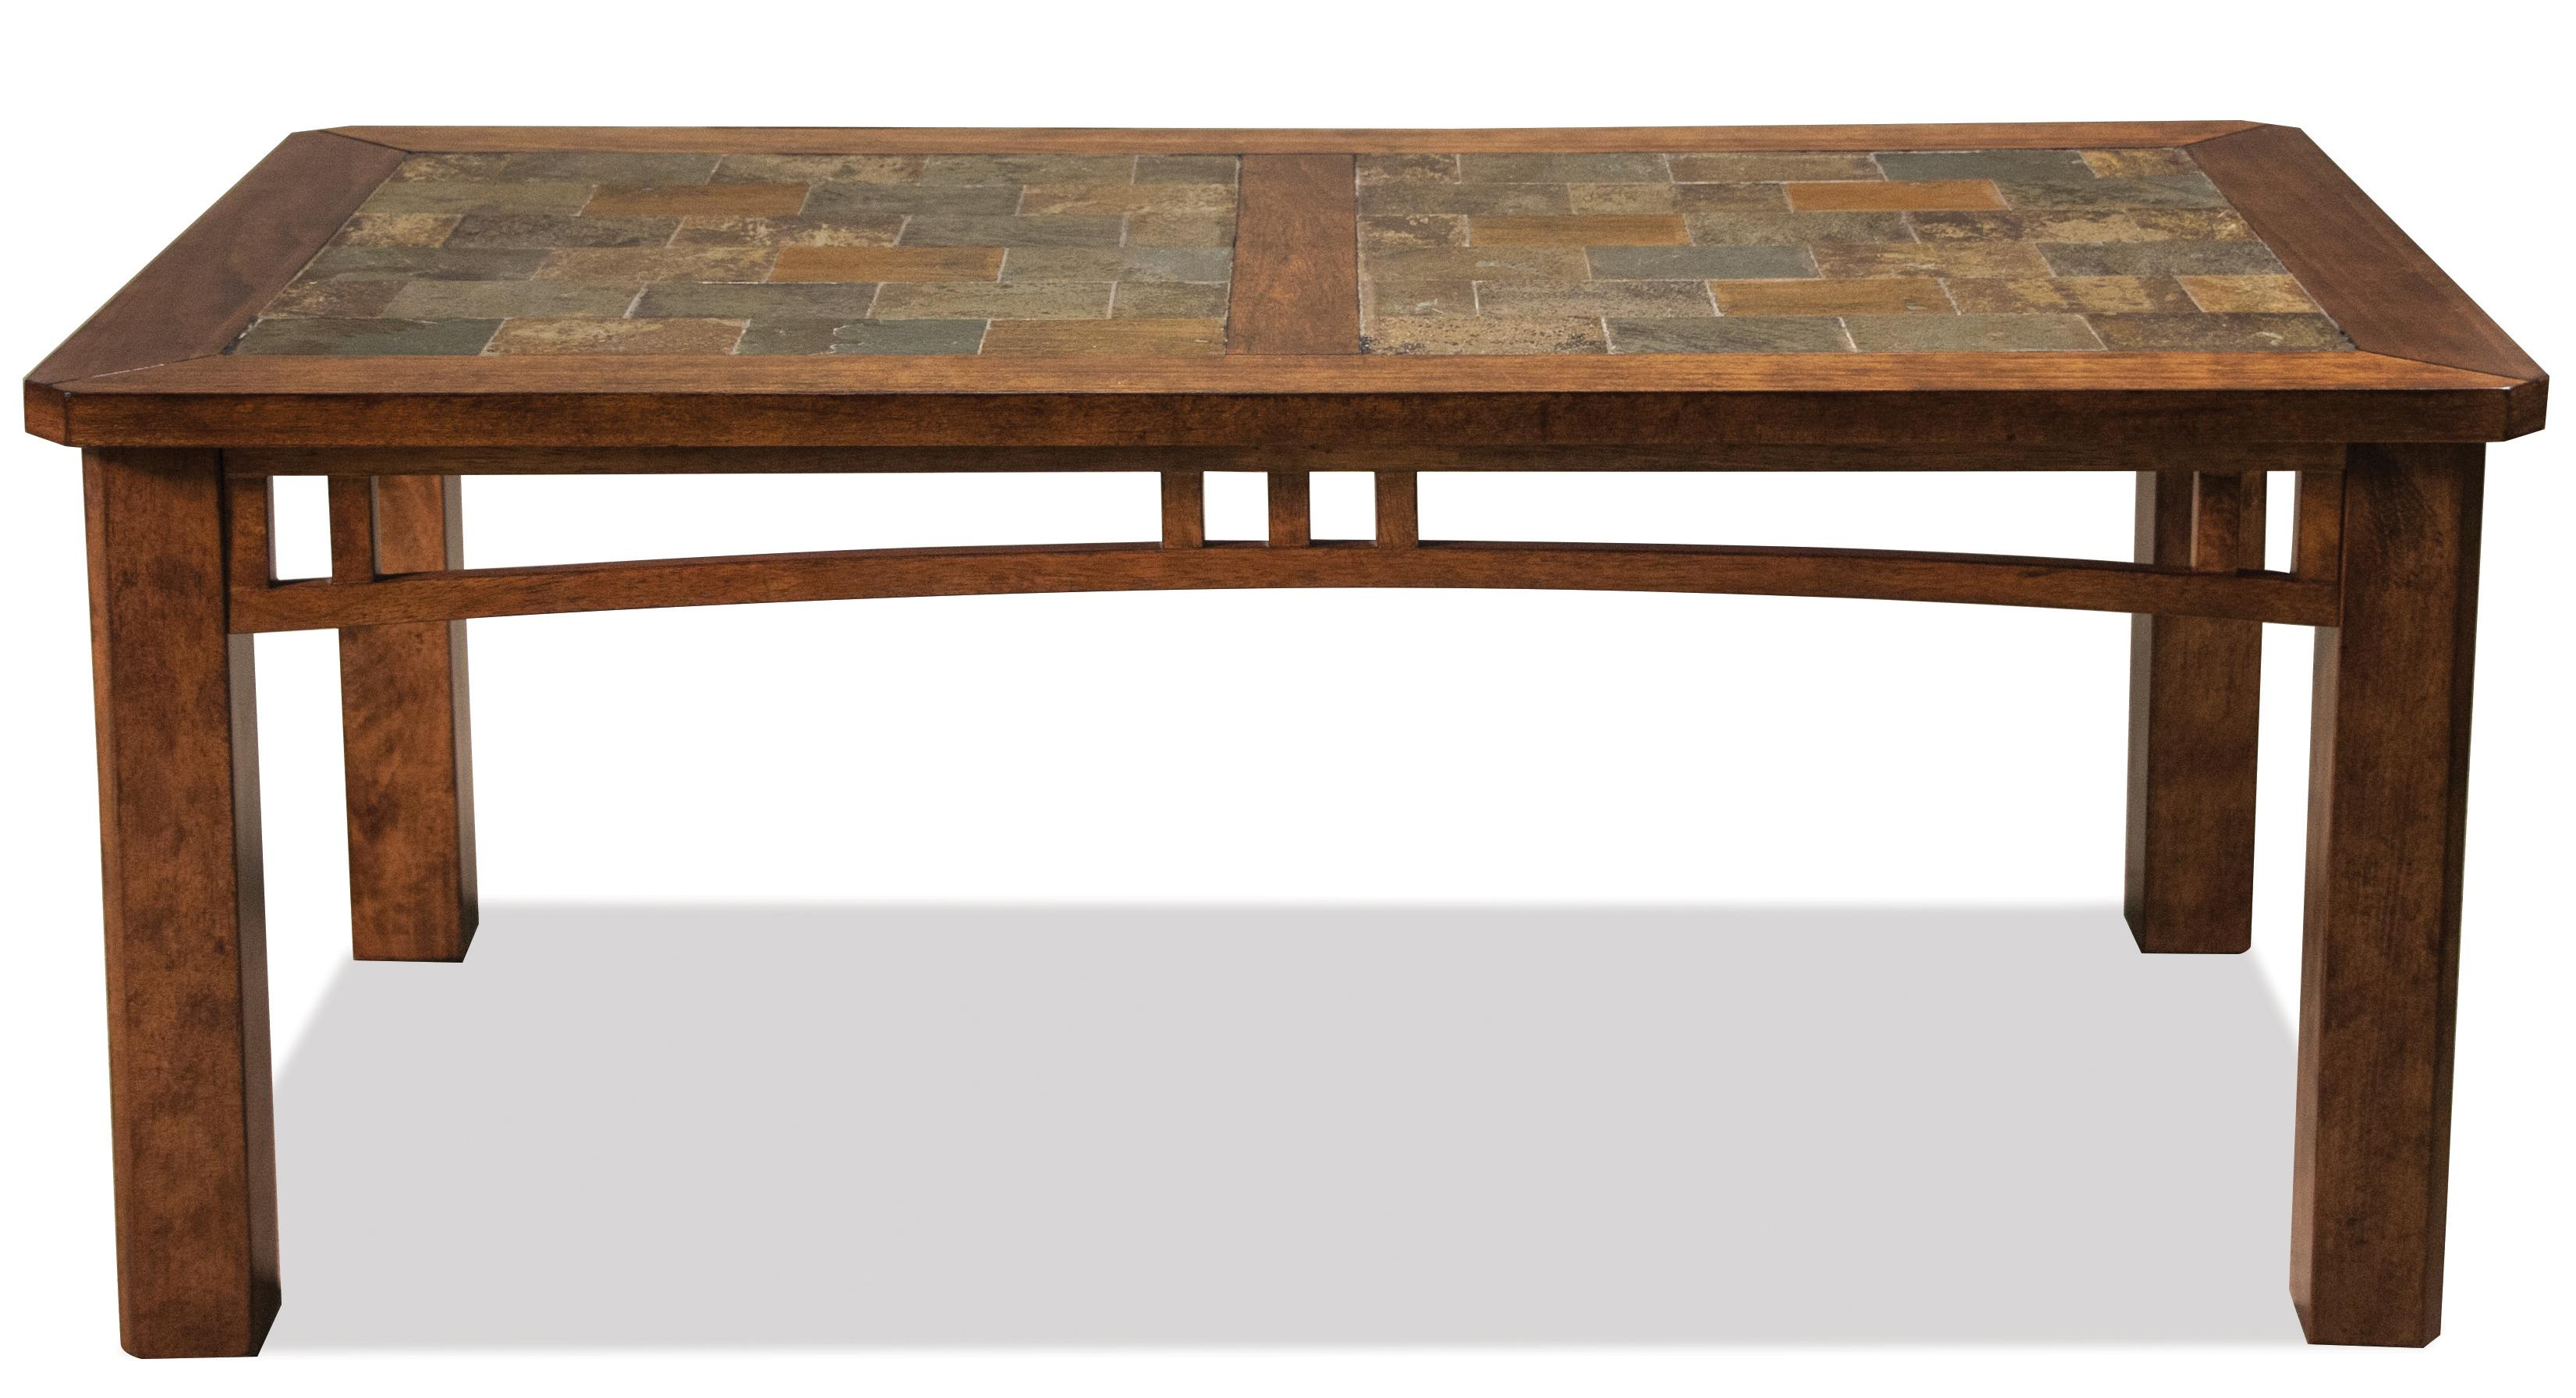 Coffee table w slate top by riverside furniture wolf for Coffee tables york pa